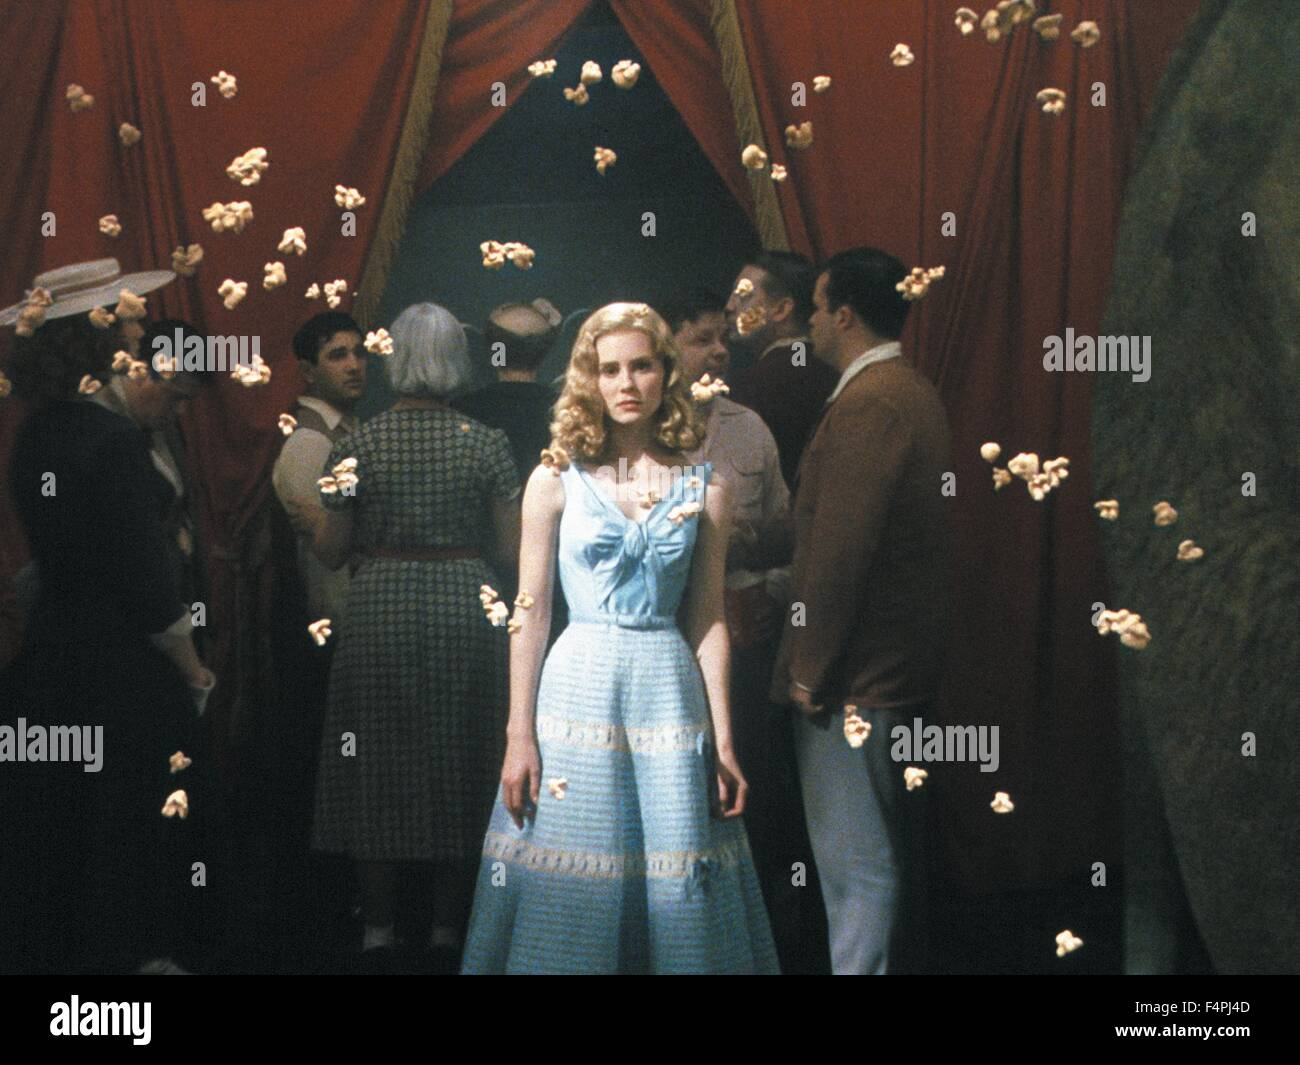 Alison Lohman / Big Fish / 2003 directed by Tim Burton [Columbia Pictures] - Stock Image